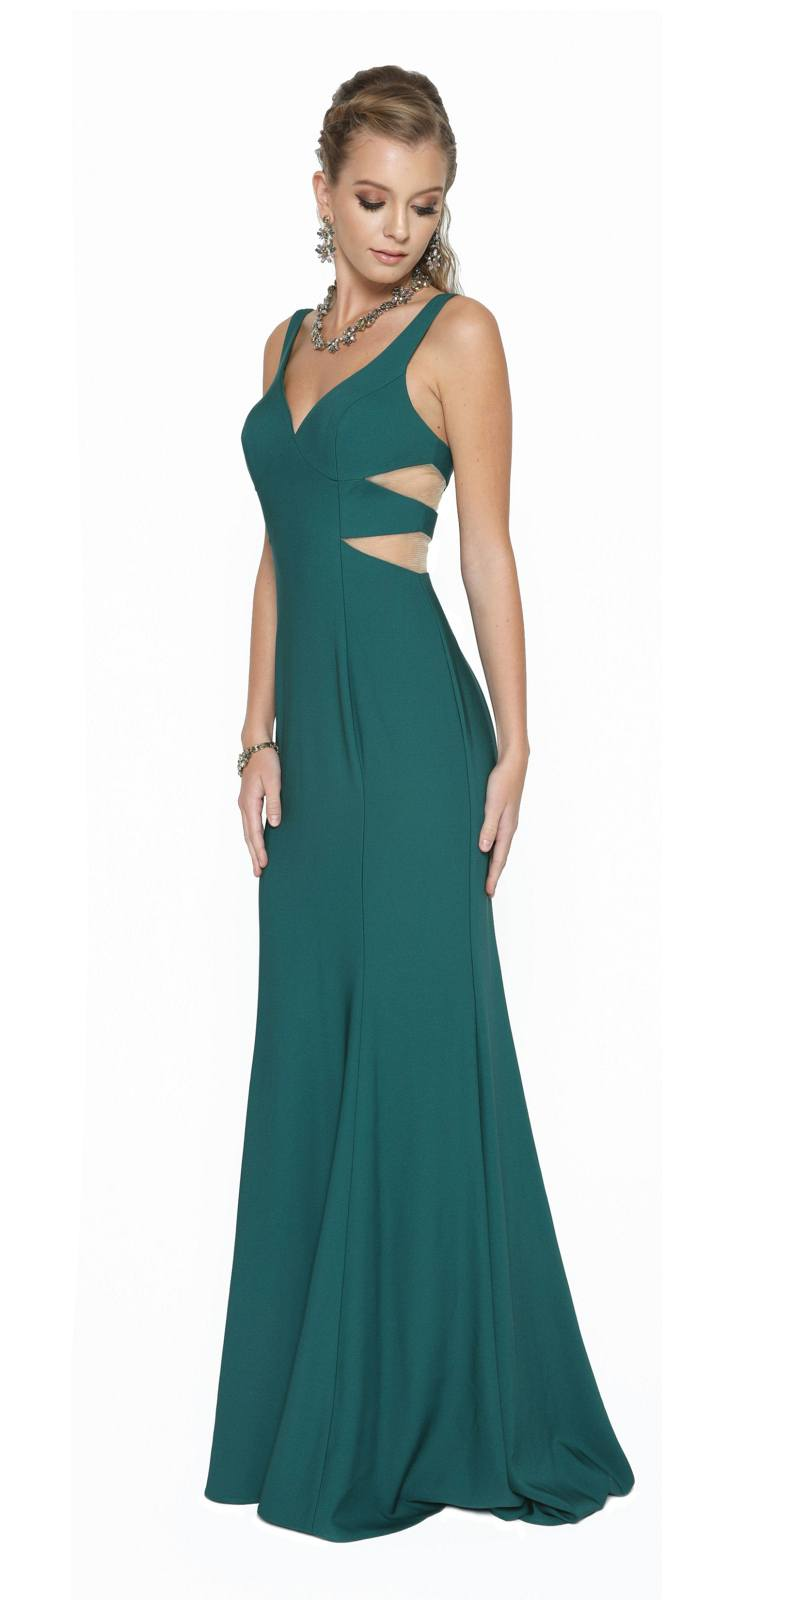 Juliet 675 V-Neck Long Prom Dress with Sheer Side Cut-Outs Burgundy ...